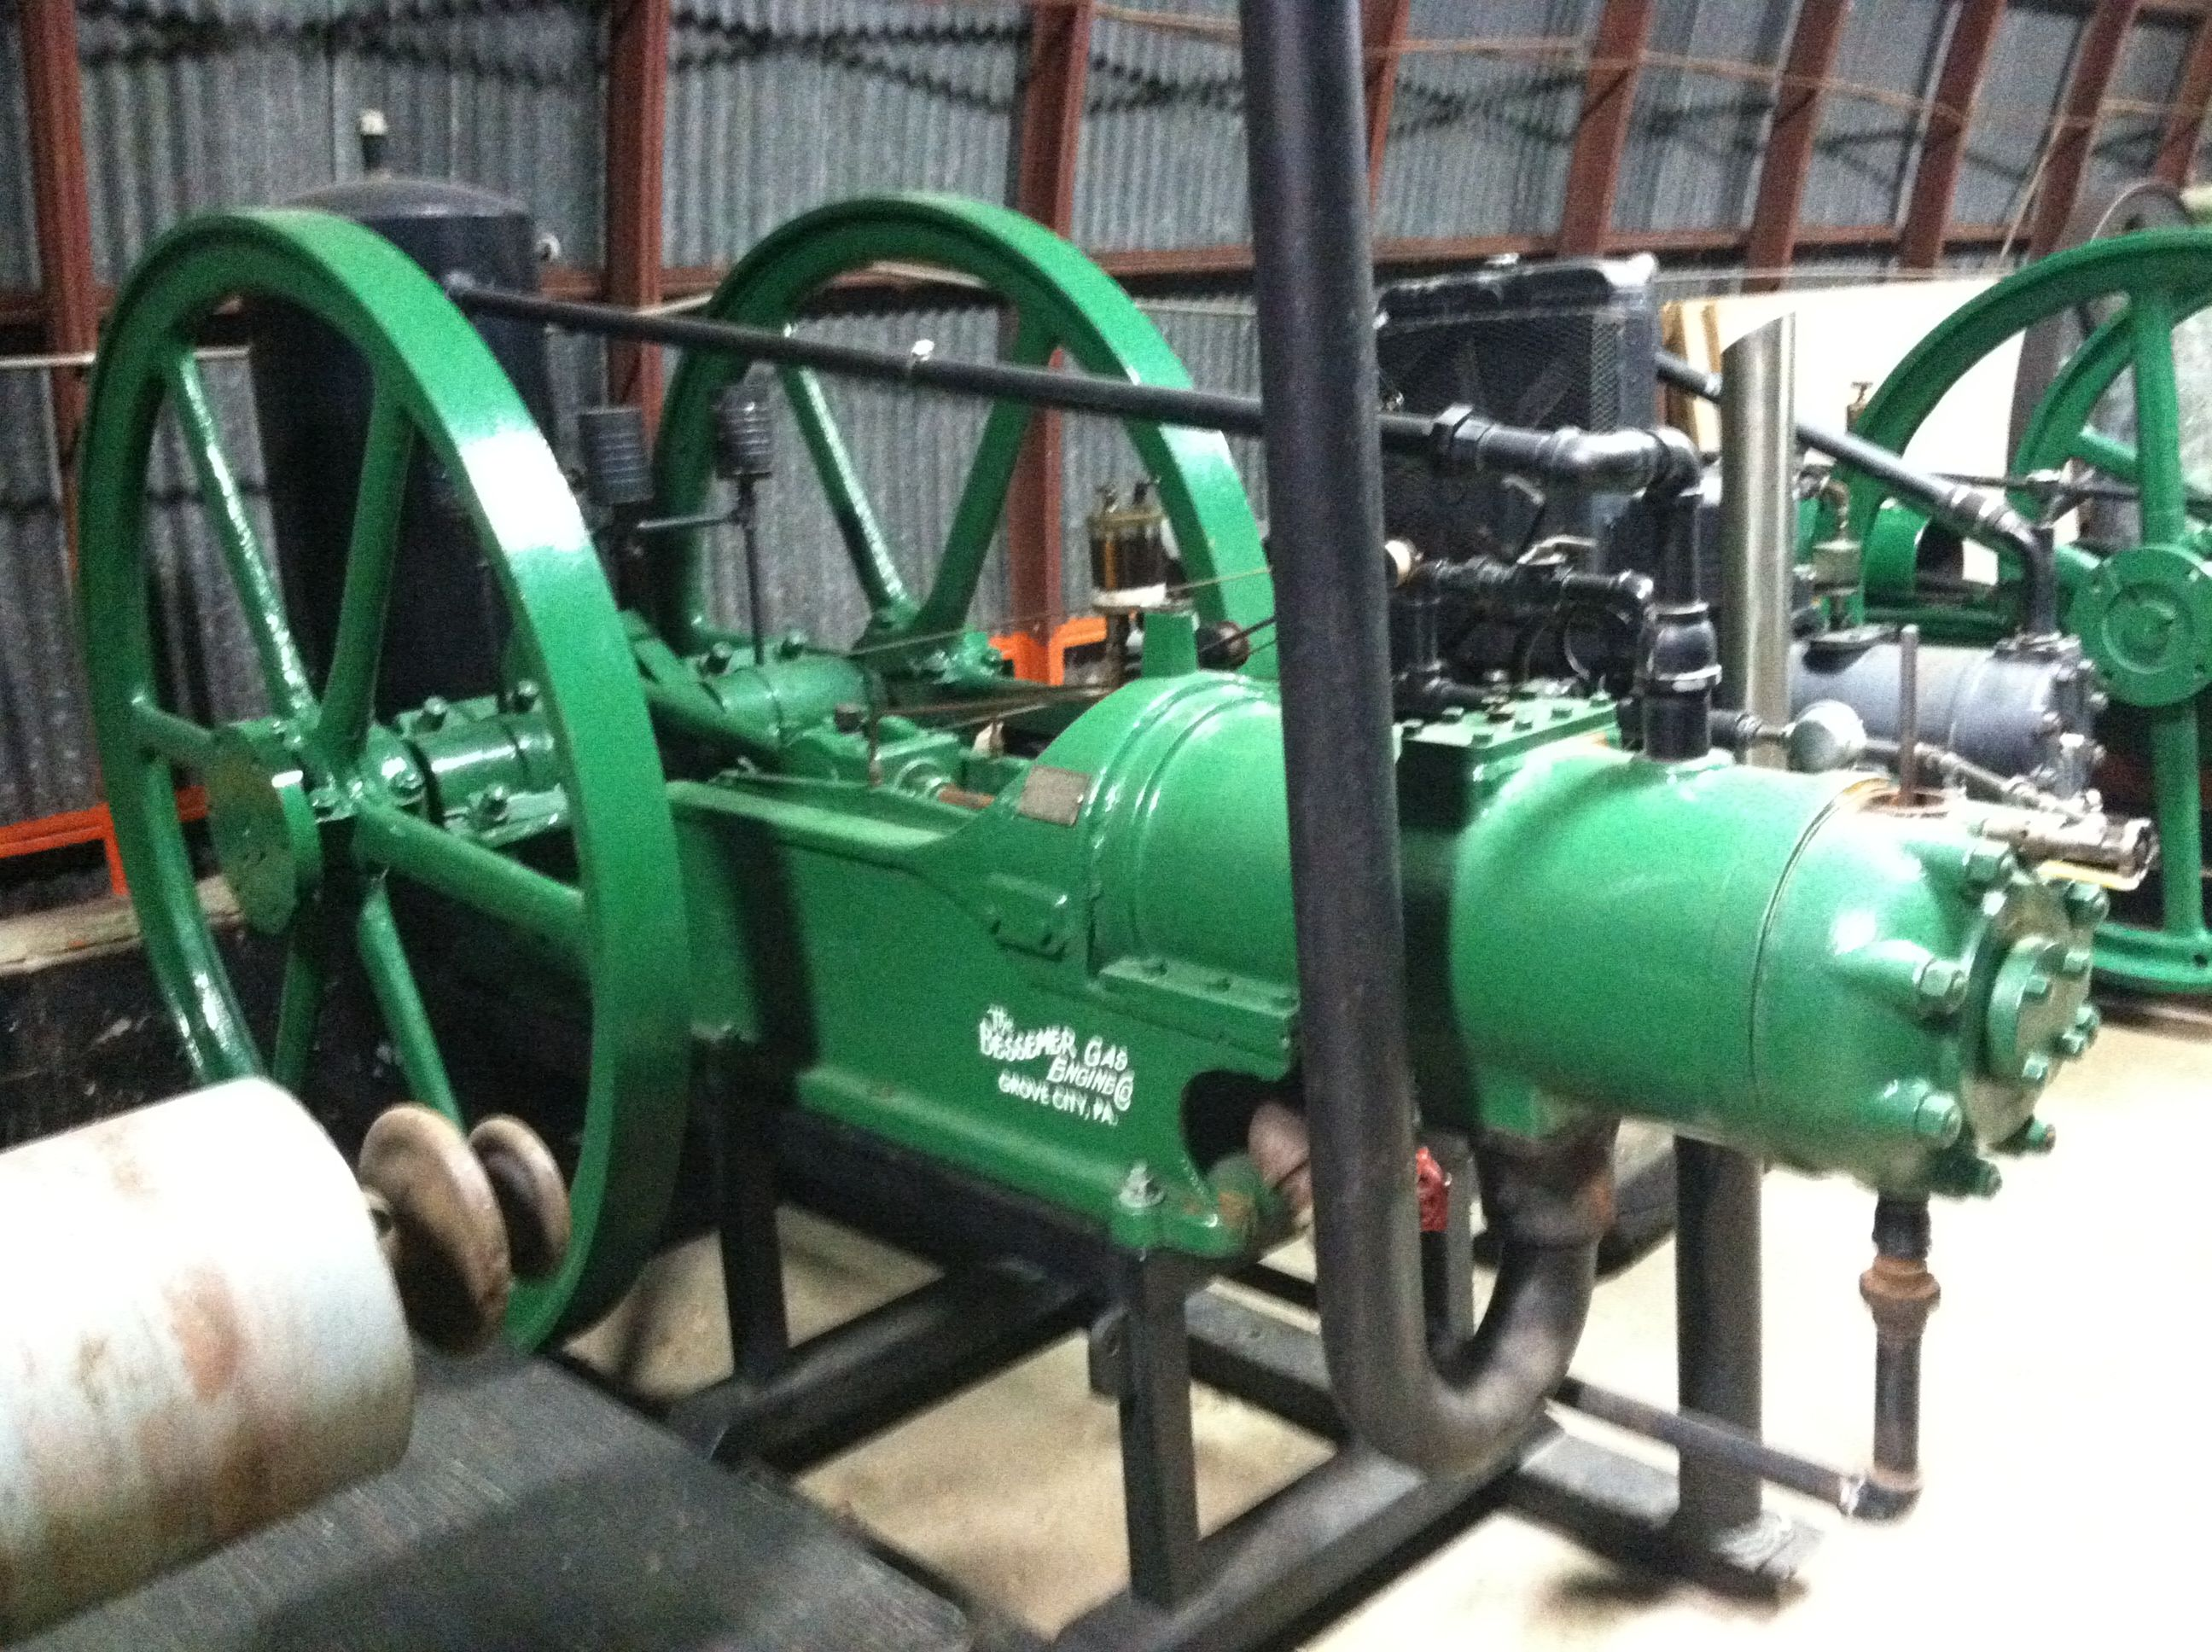 Here is another Bessemer engine rates at 15hp this engine uses